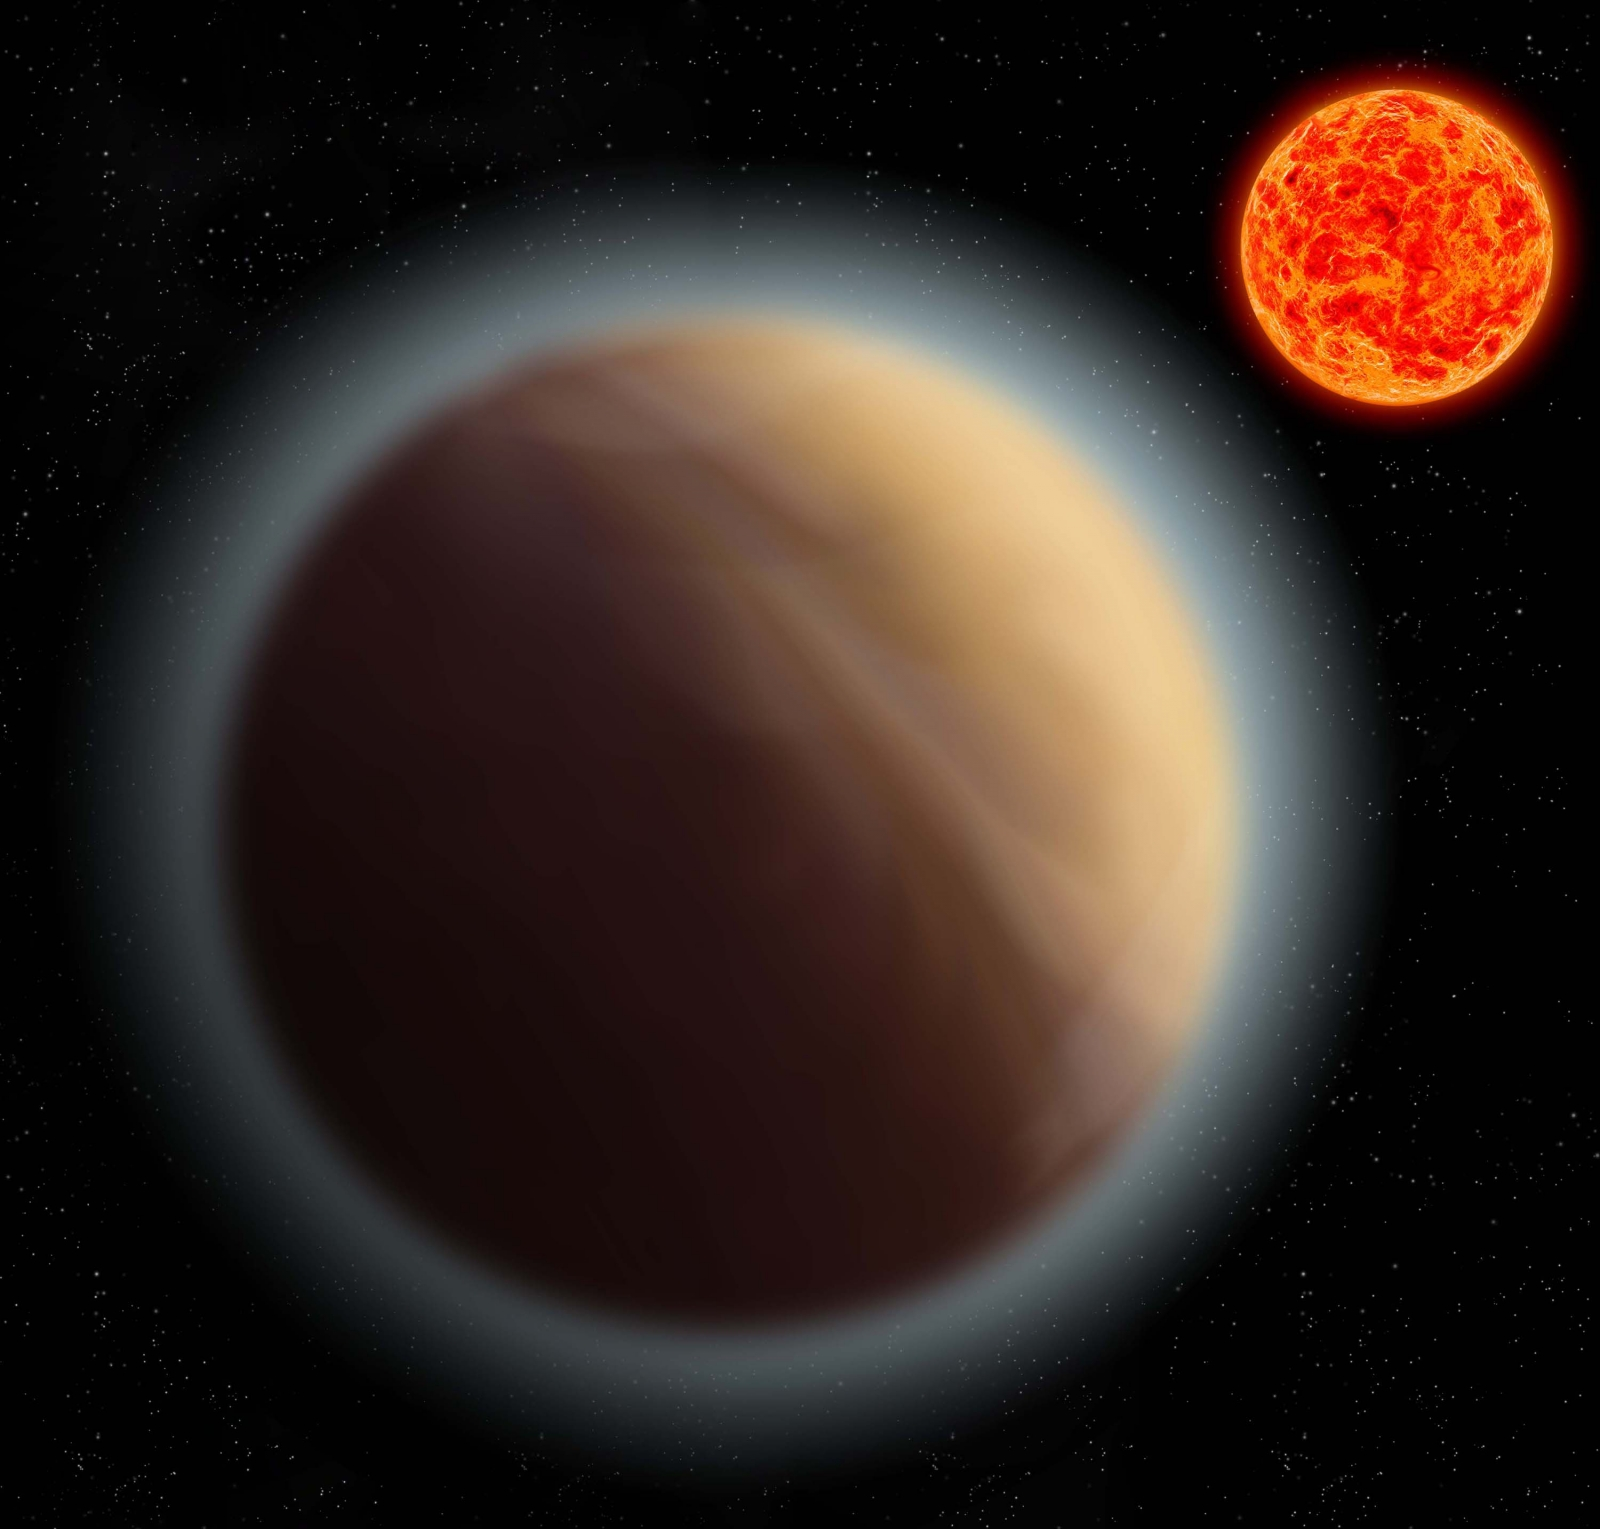 Atmosphere found around Earth-like planet